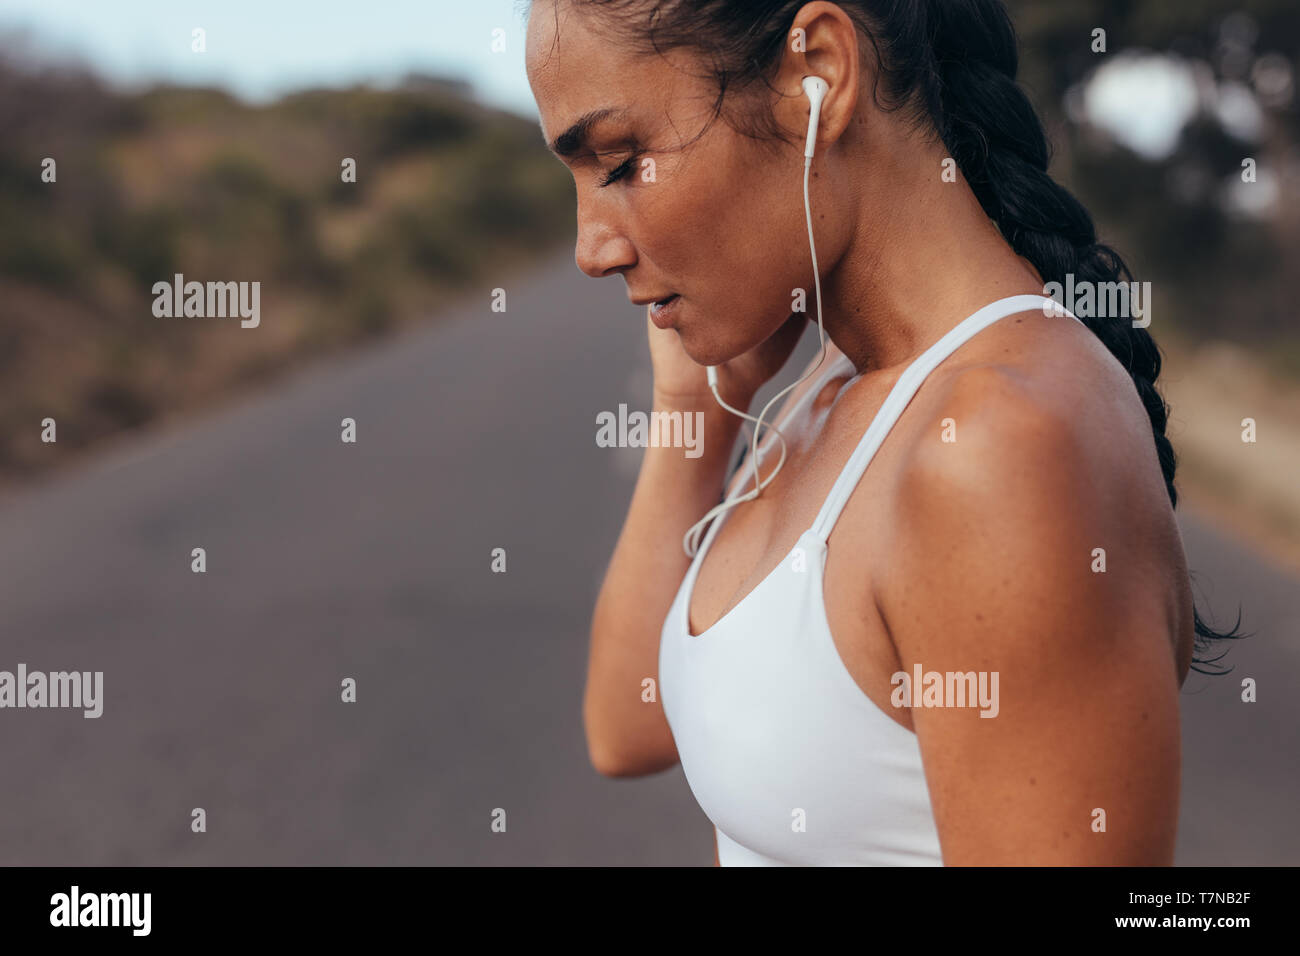 Side view of a female athlete wearing earphones listening to music while on training session. Sportswoman listening to music outdoors in morning. - Stock Image